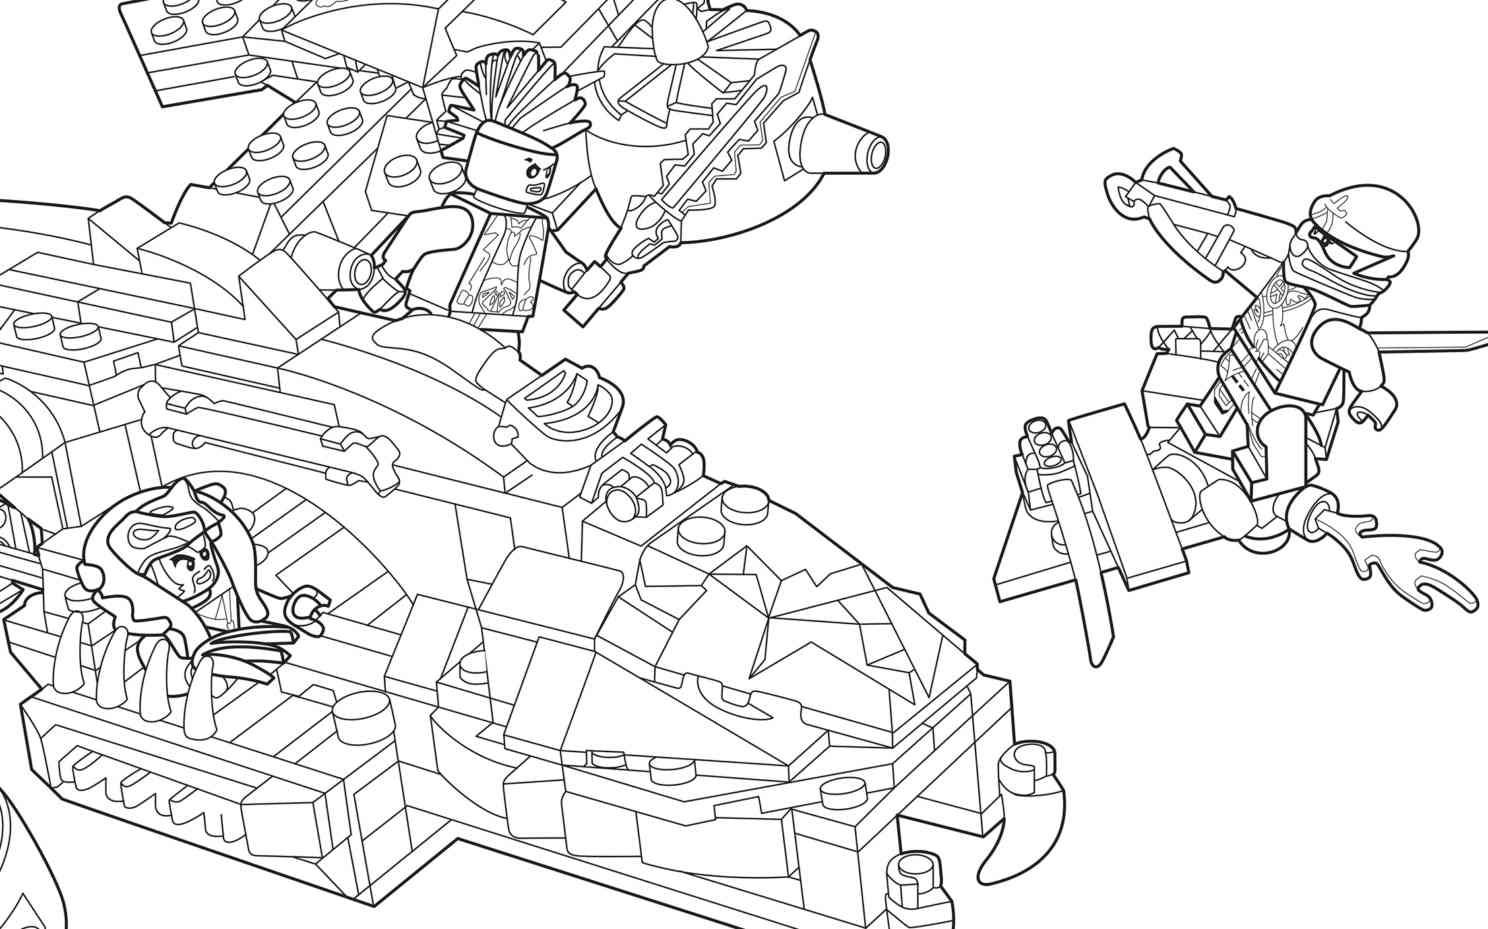 lego ninjago color pages - lego ninjago 70746 coloring sheet lego coloring sheets